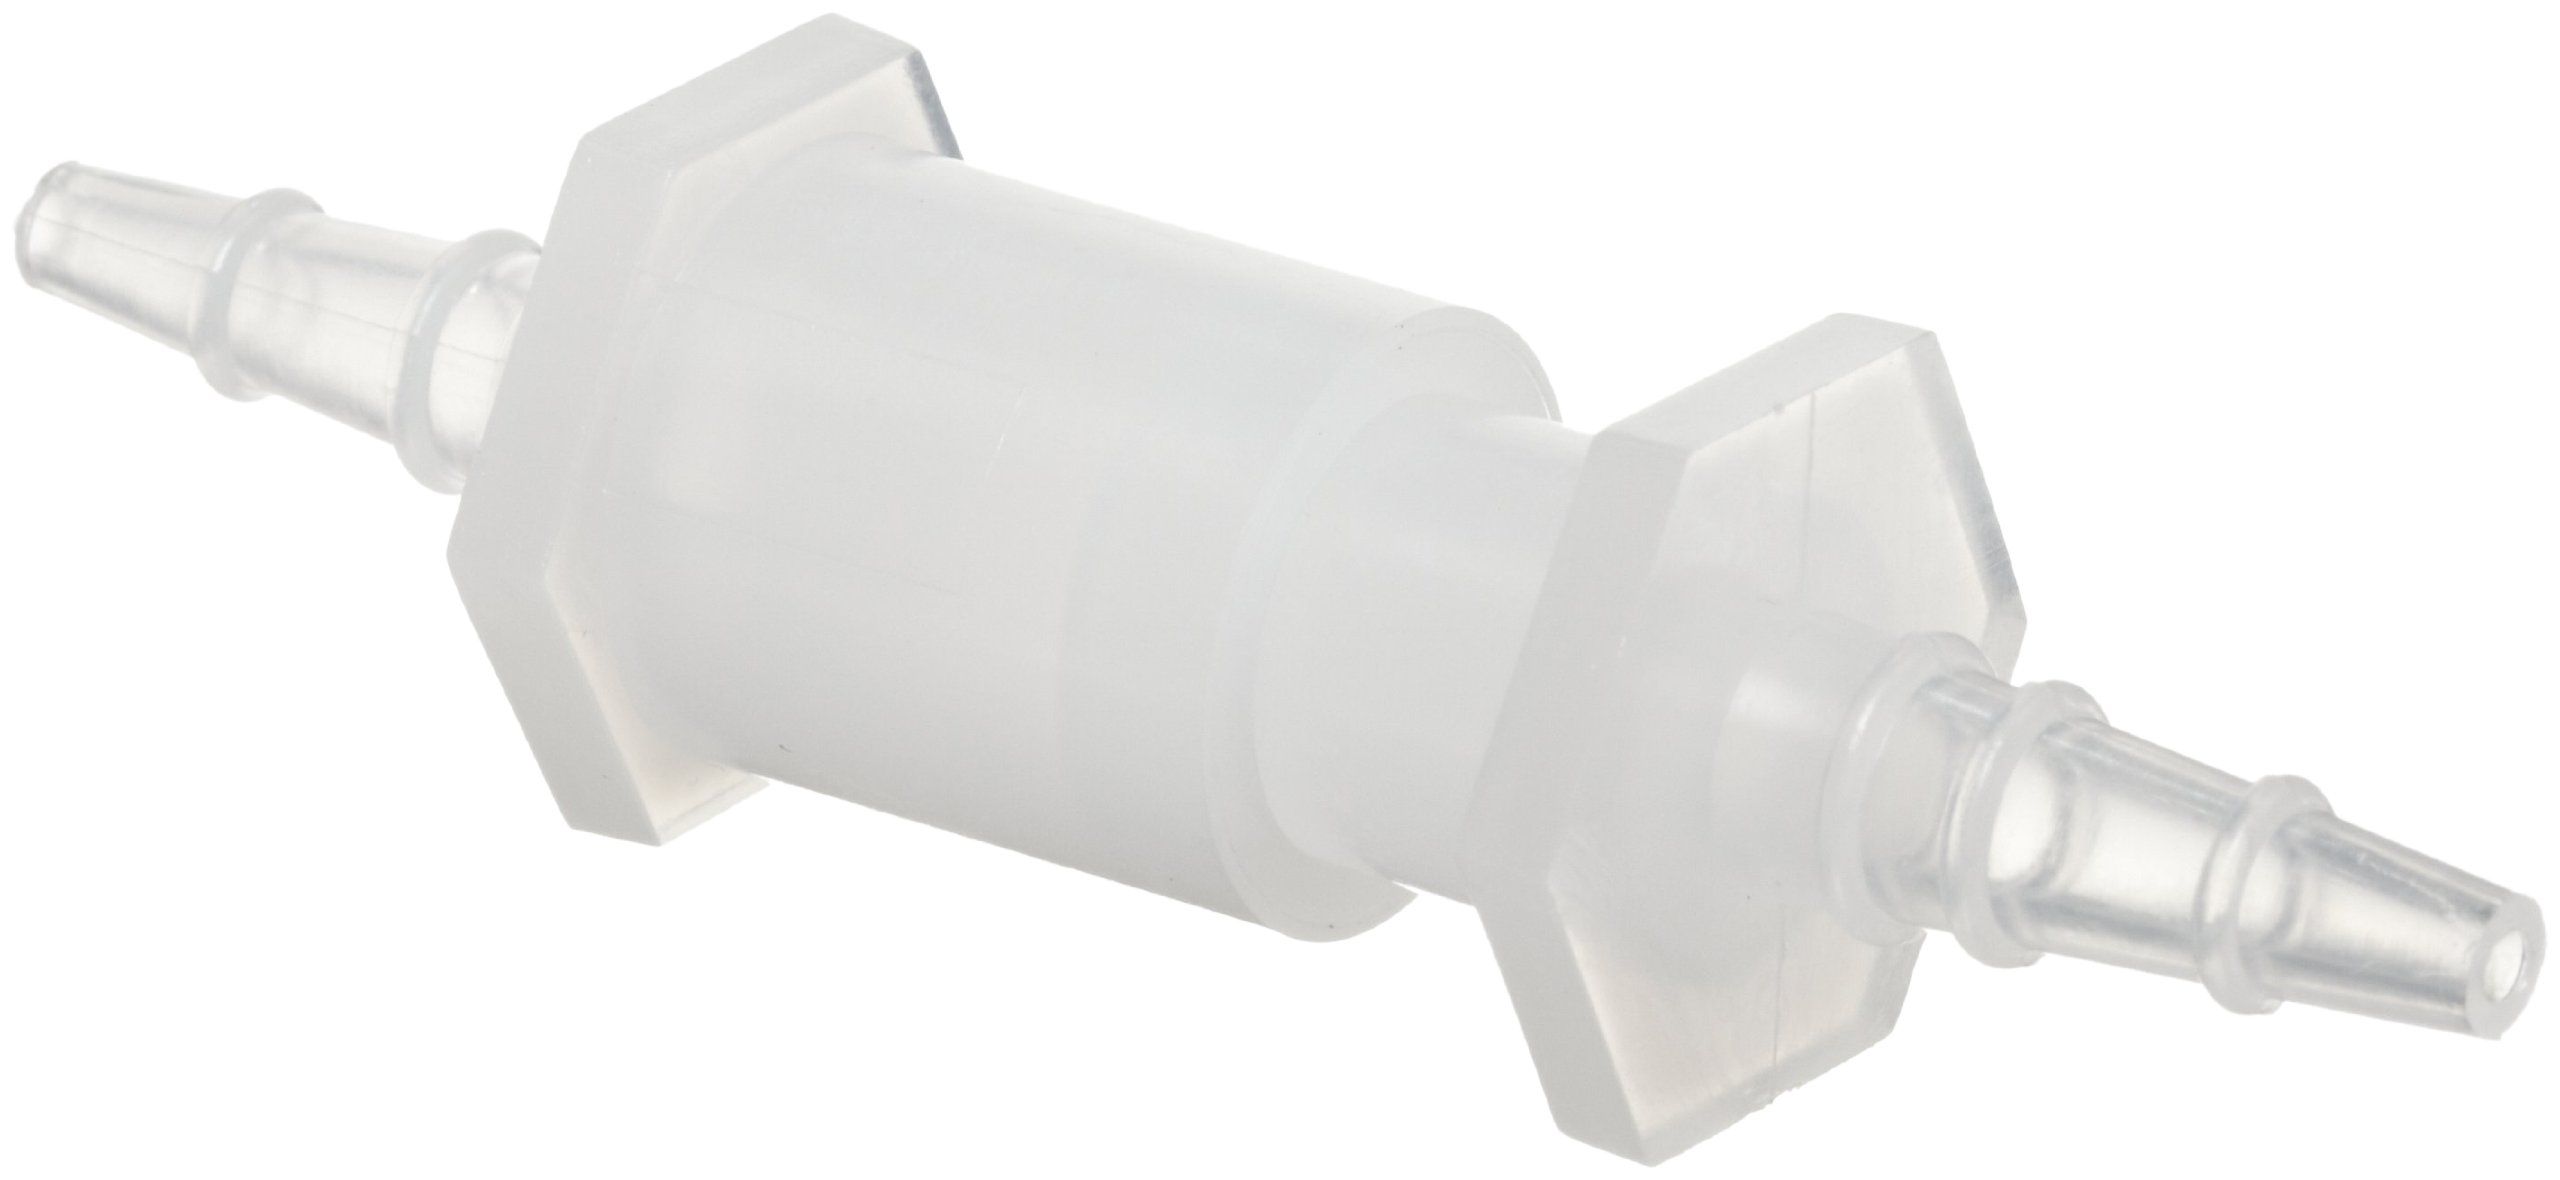 Bel-Art Mix and Match Quick Disconnects for ⅛ to ¼ in. Tubing; Polyethylene (Pack of 12) (H19727-0000)